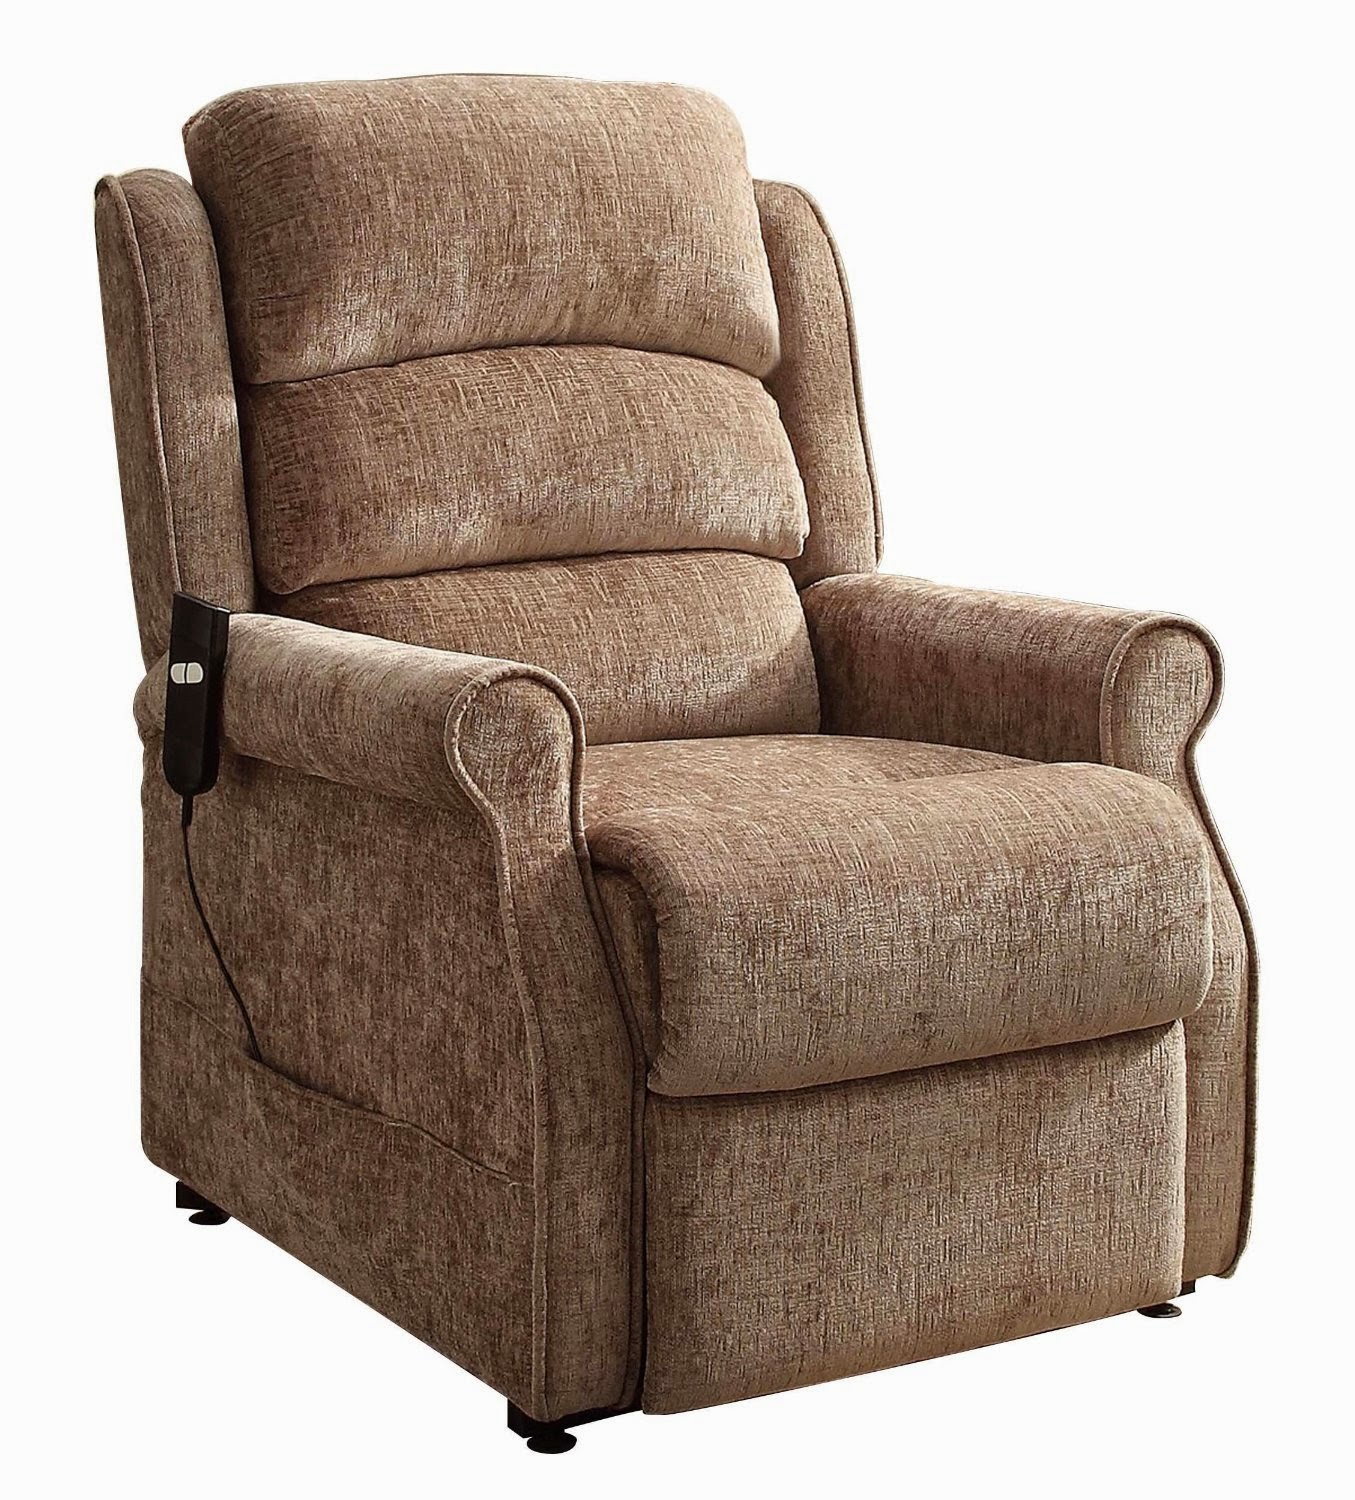 Best Reclining Sofa For The Money Linden Chenille Reclining Sofa